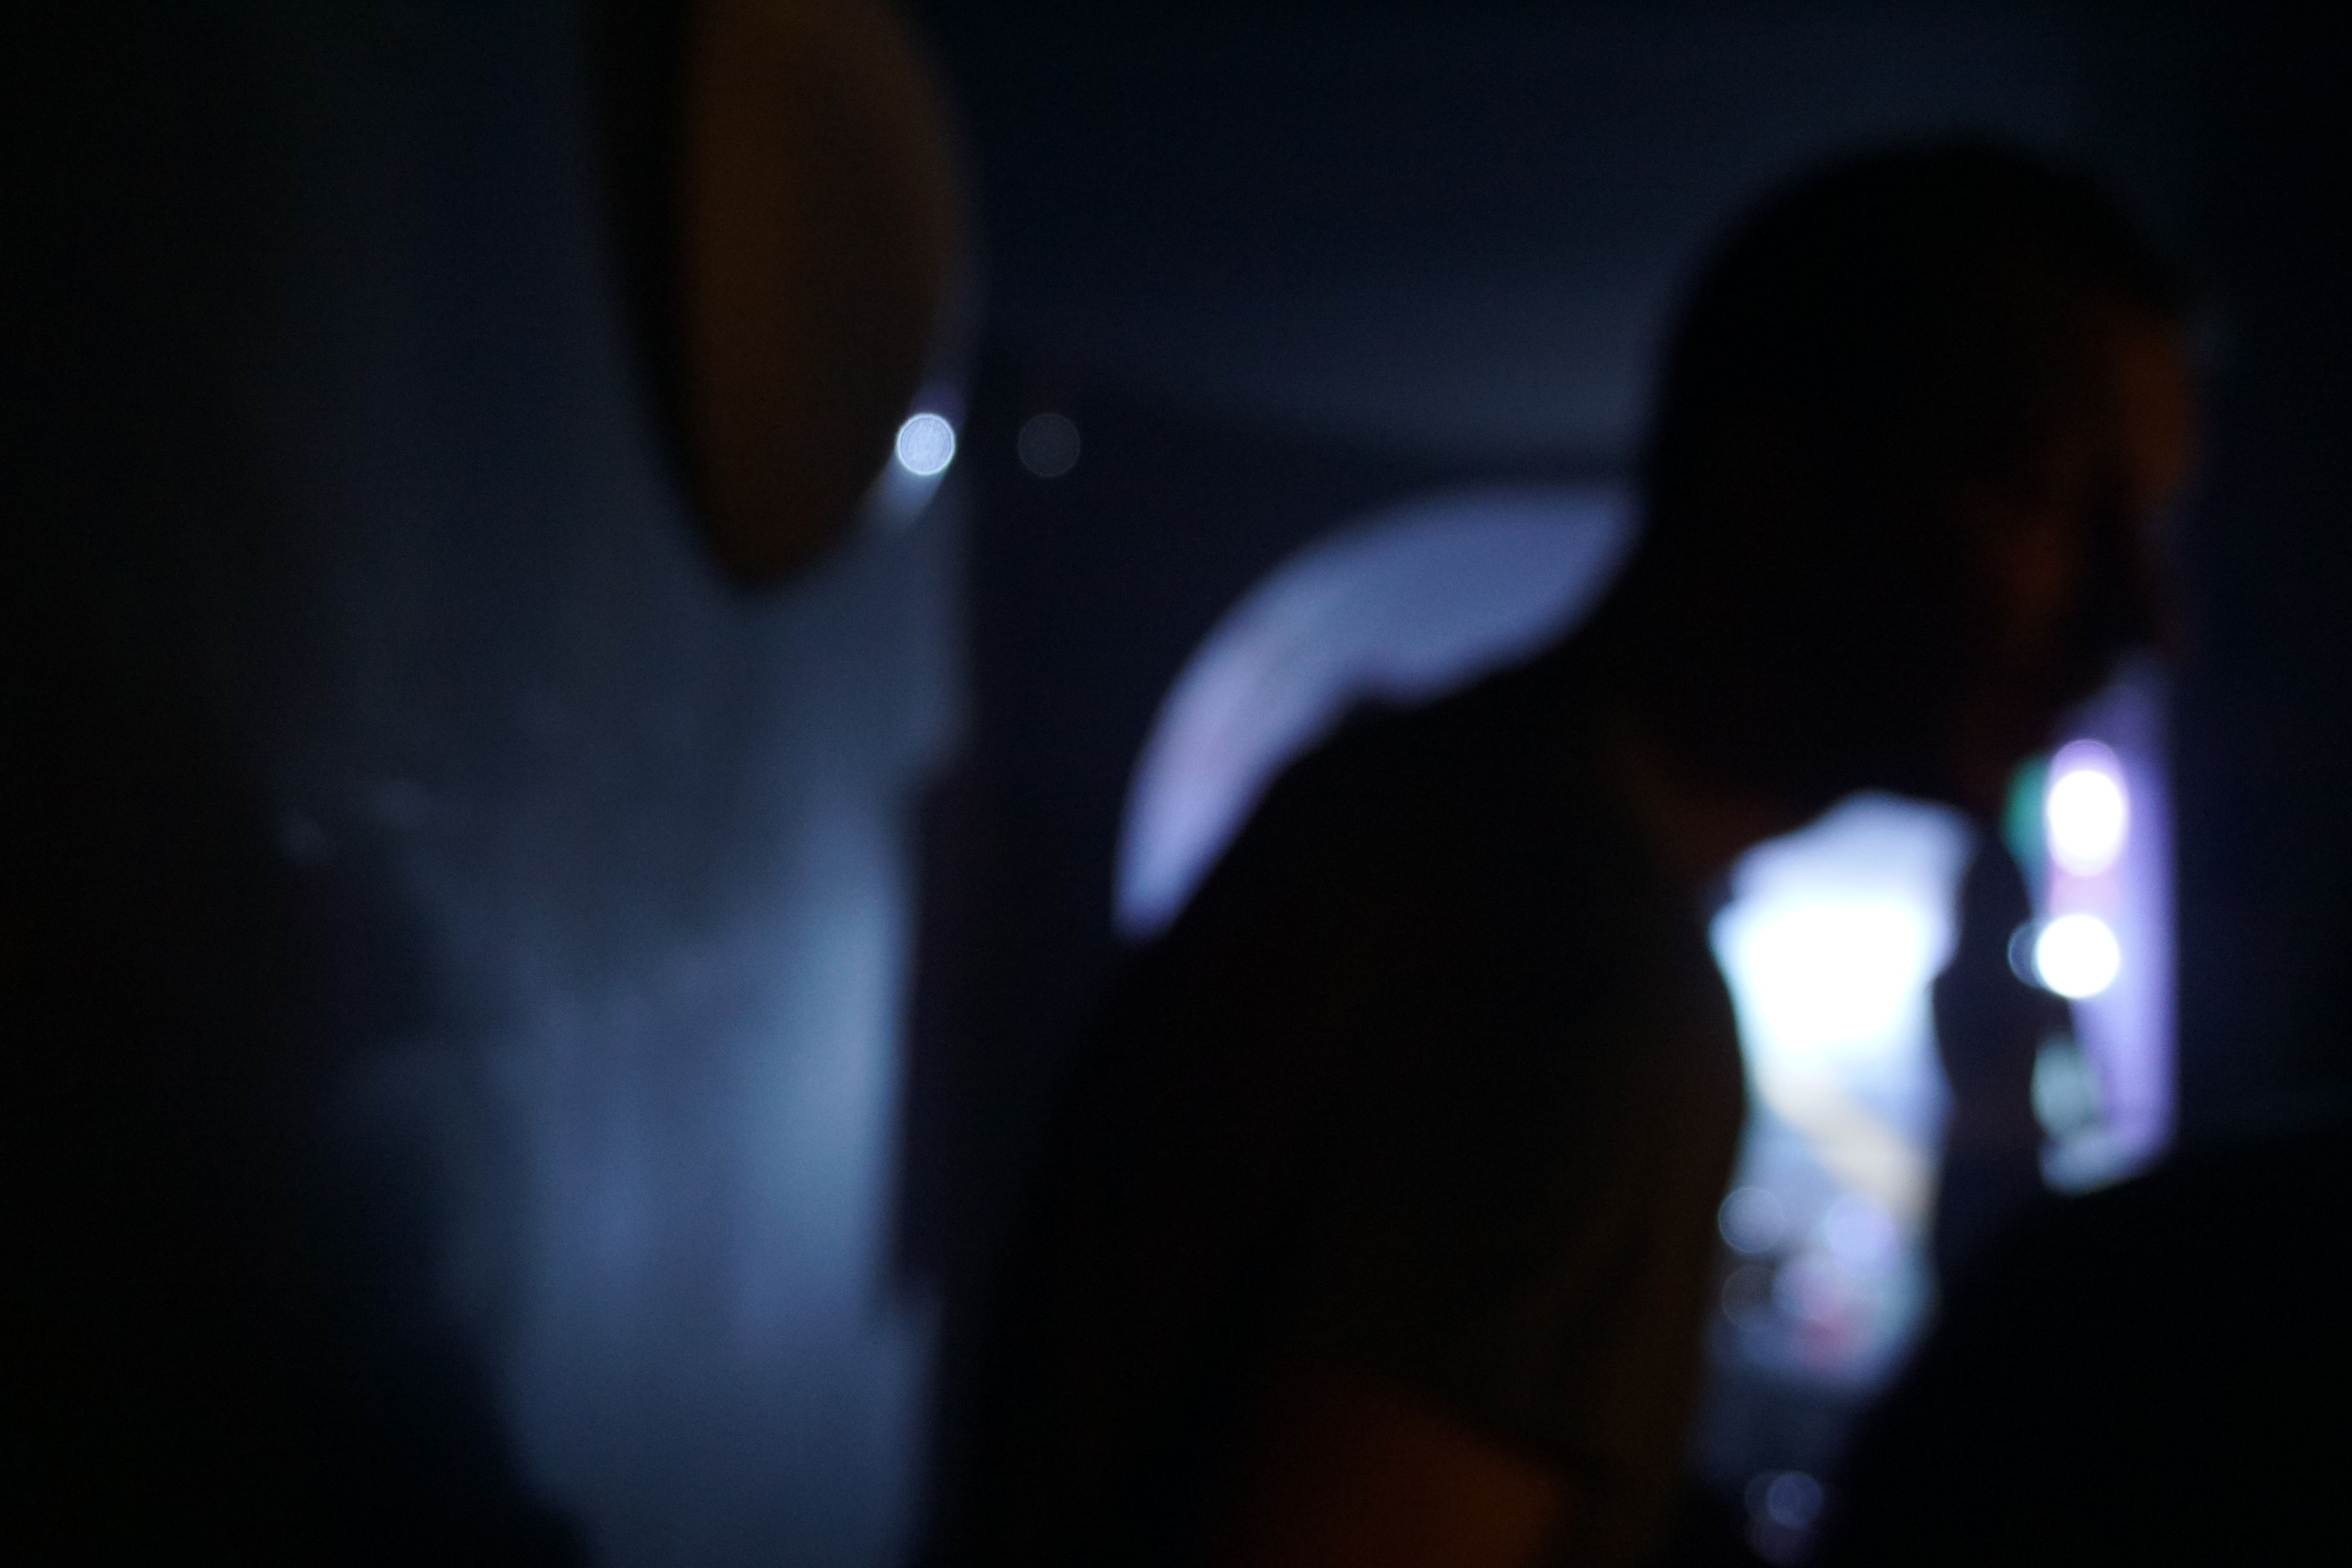 men, lifestyles, night, illuminated, leisure activity, silhouette, rear view, person, focus on foreground, standing, defocused, unrecognizable person, indoors, dark, lighting equipment, selective focus, holding